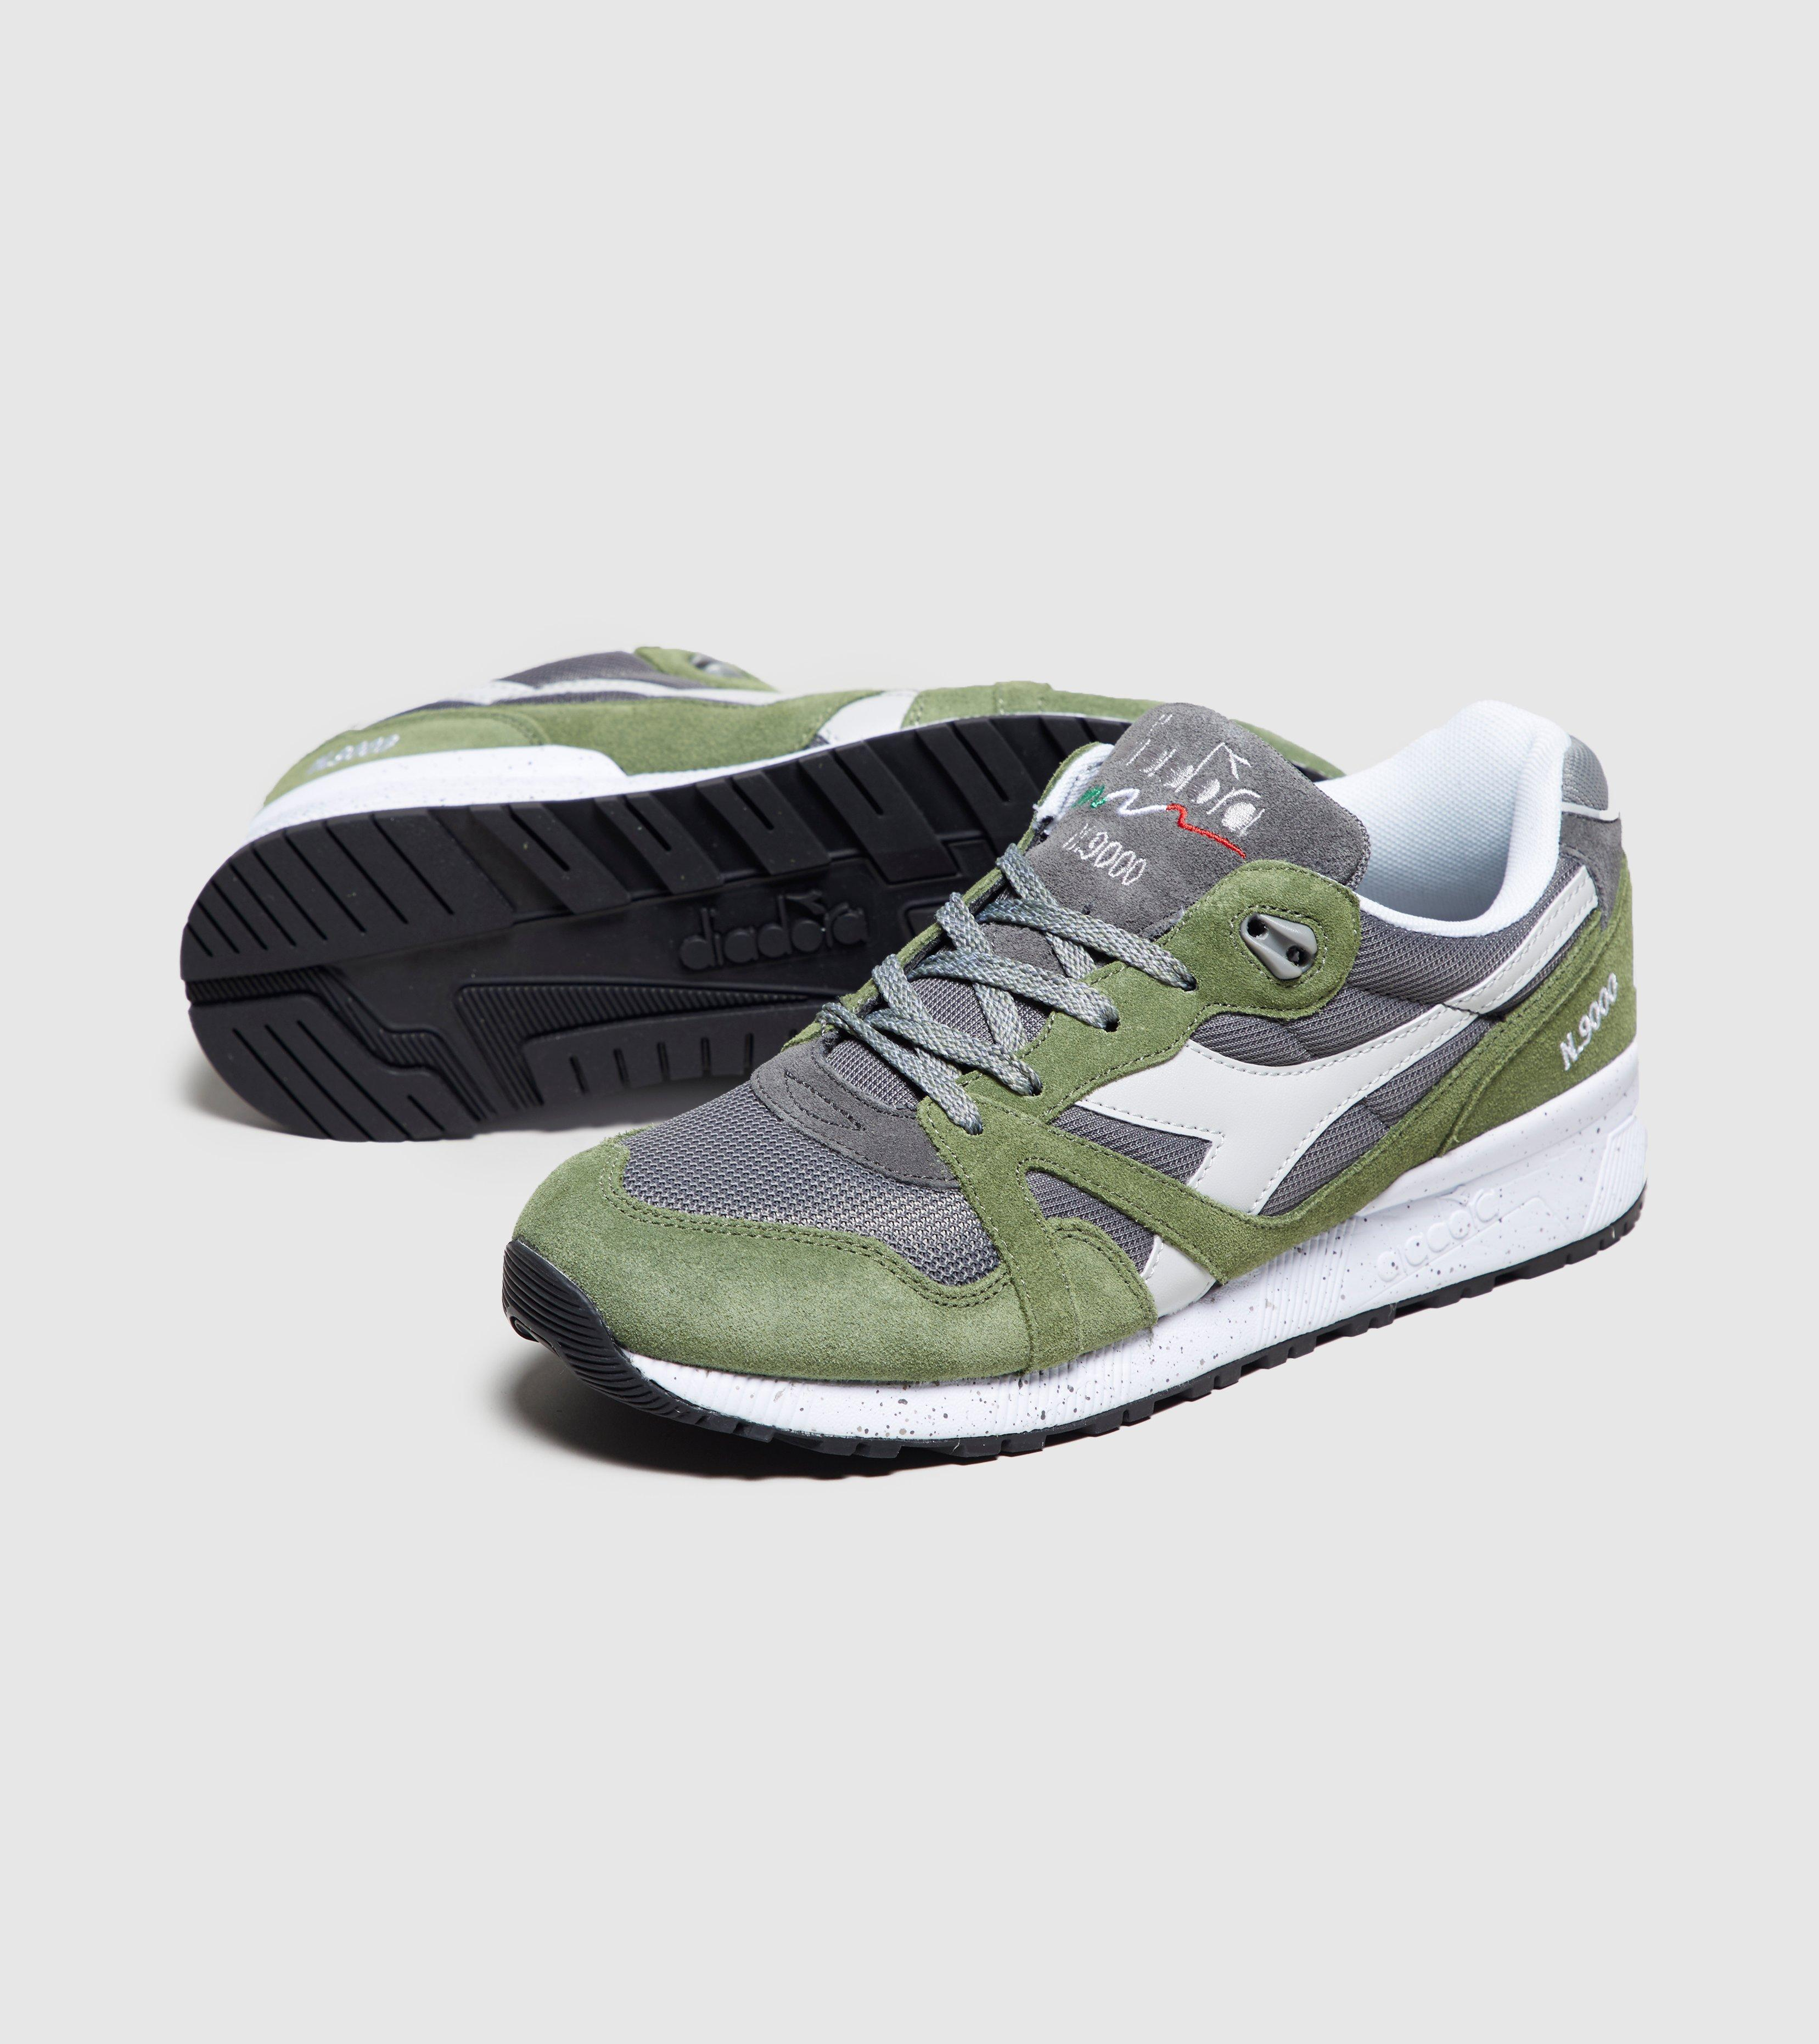 519aa57e2bf Diadora N9000 Speckled in Green for Men - Lyst